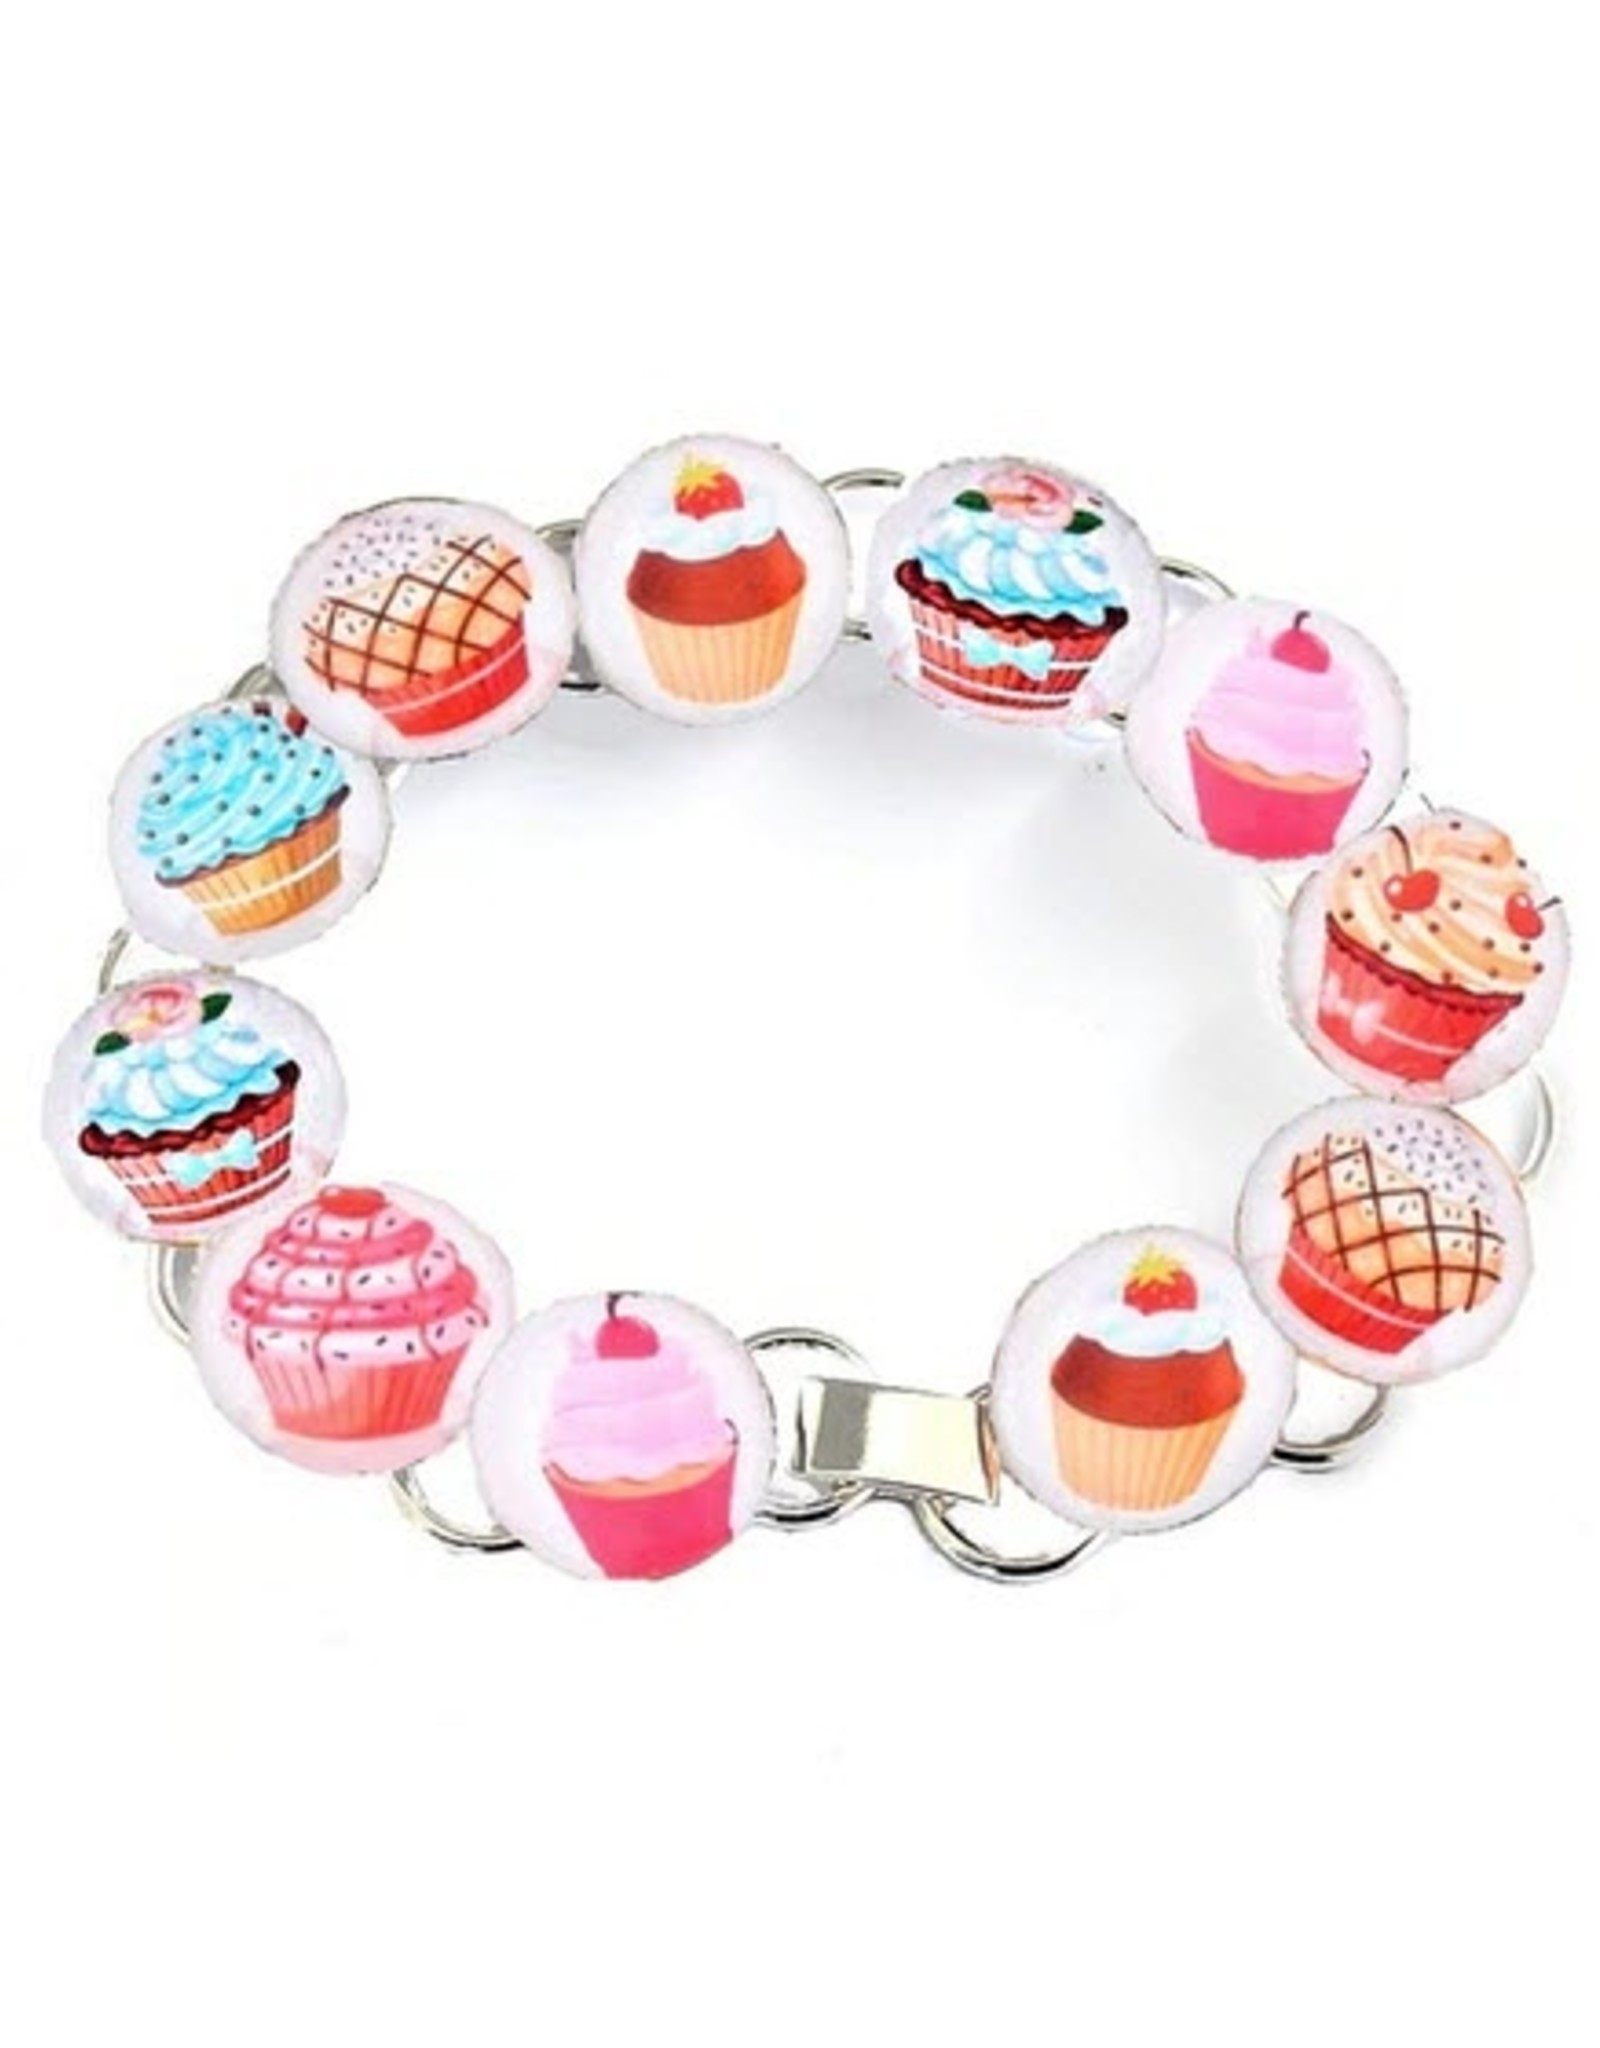 Huckleberry Huckleberry - Bracelet Set Cupcakes